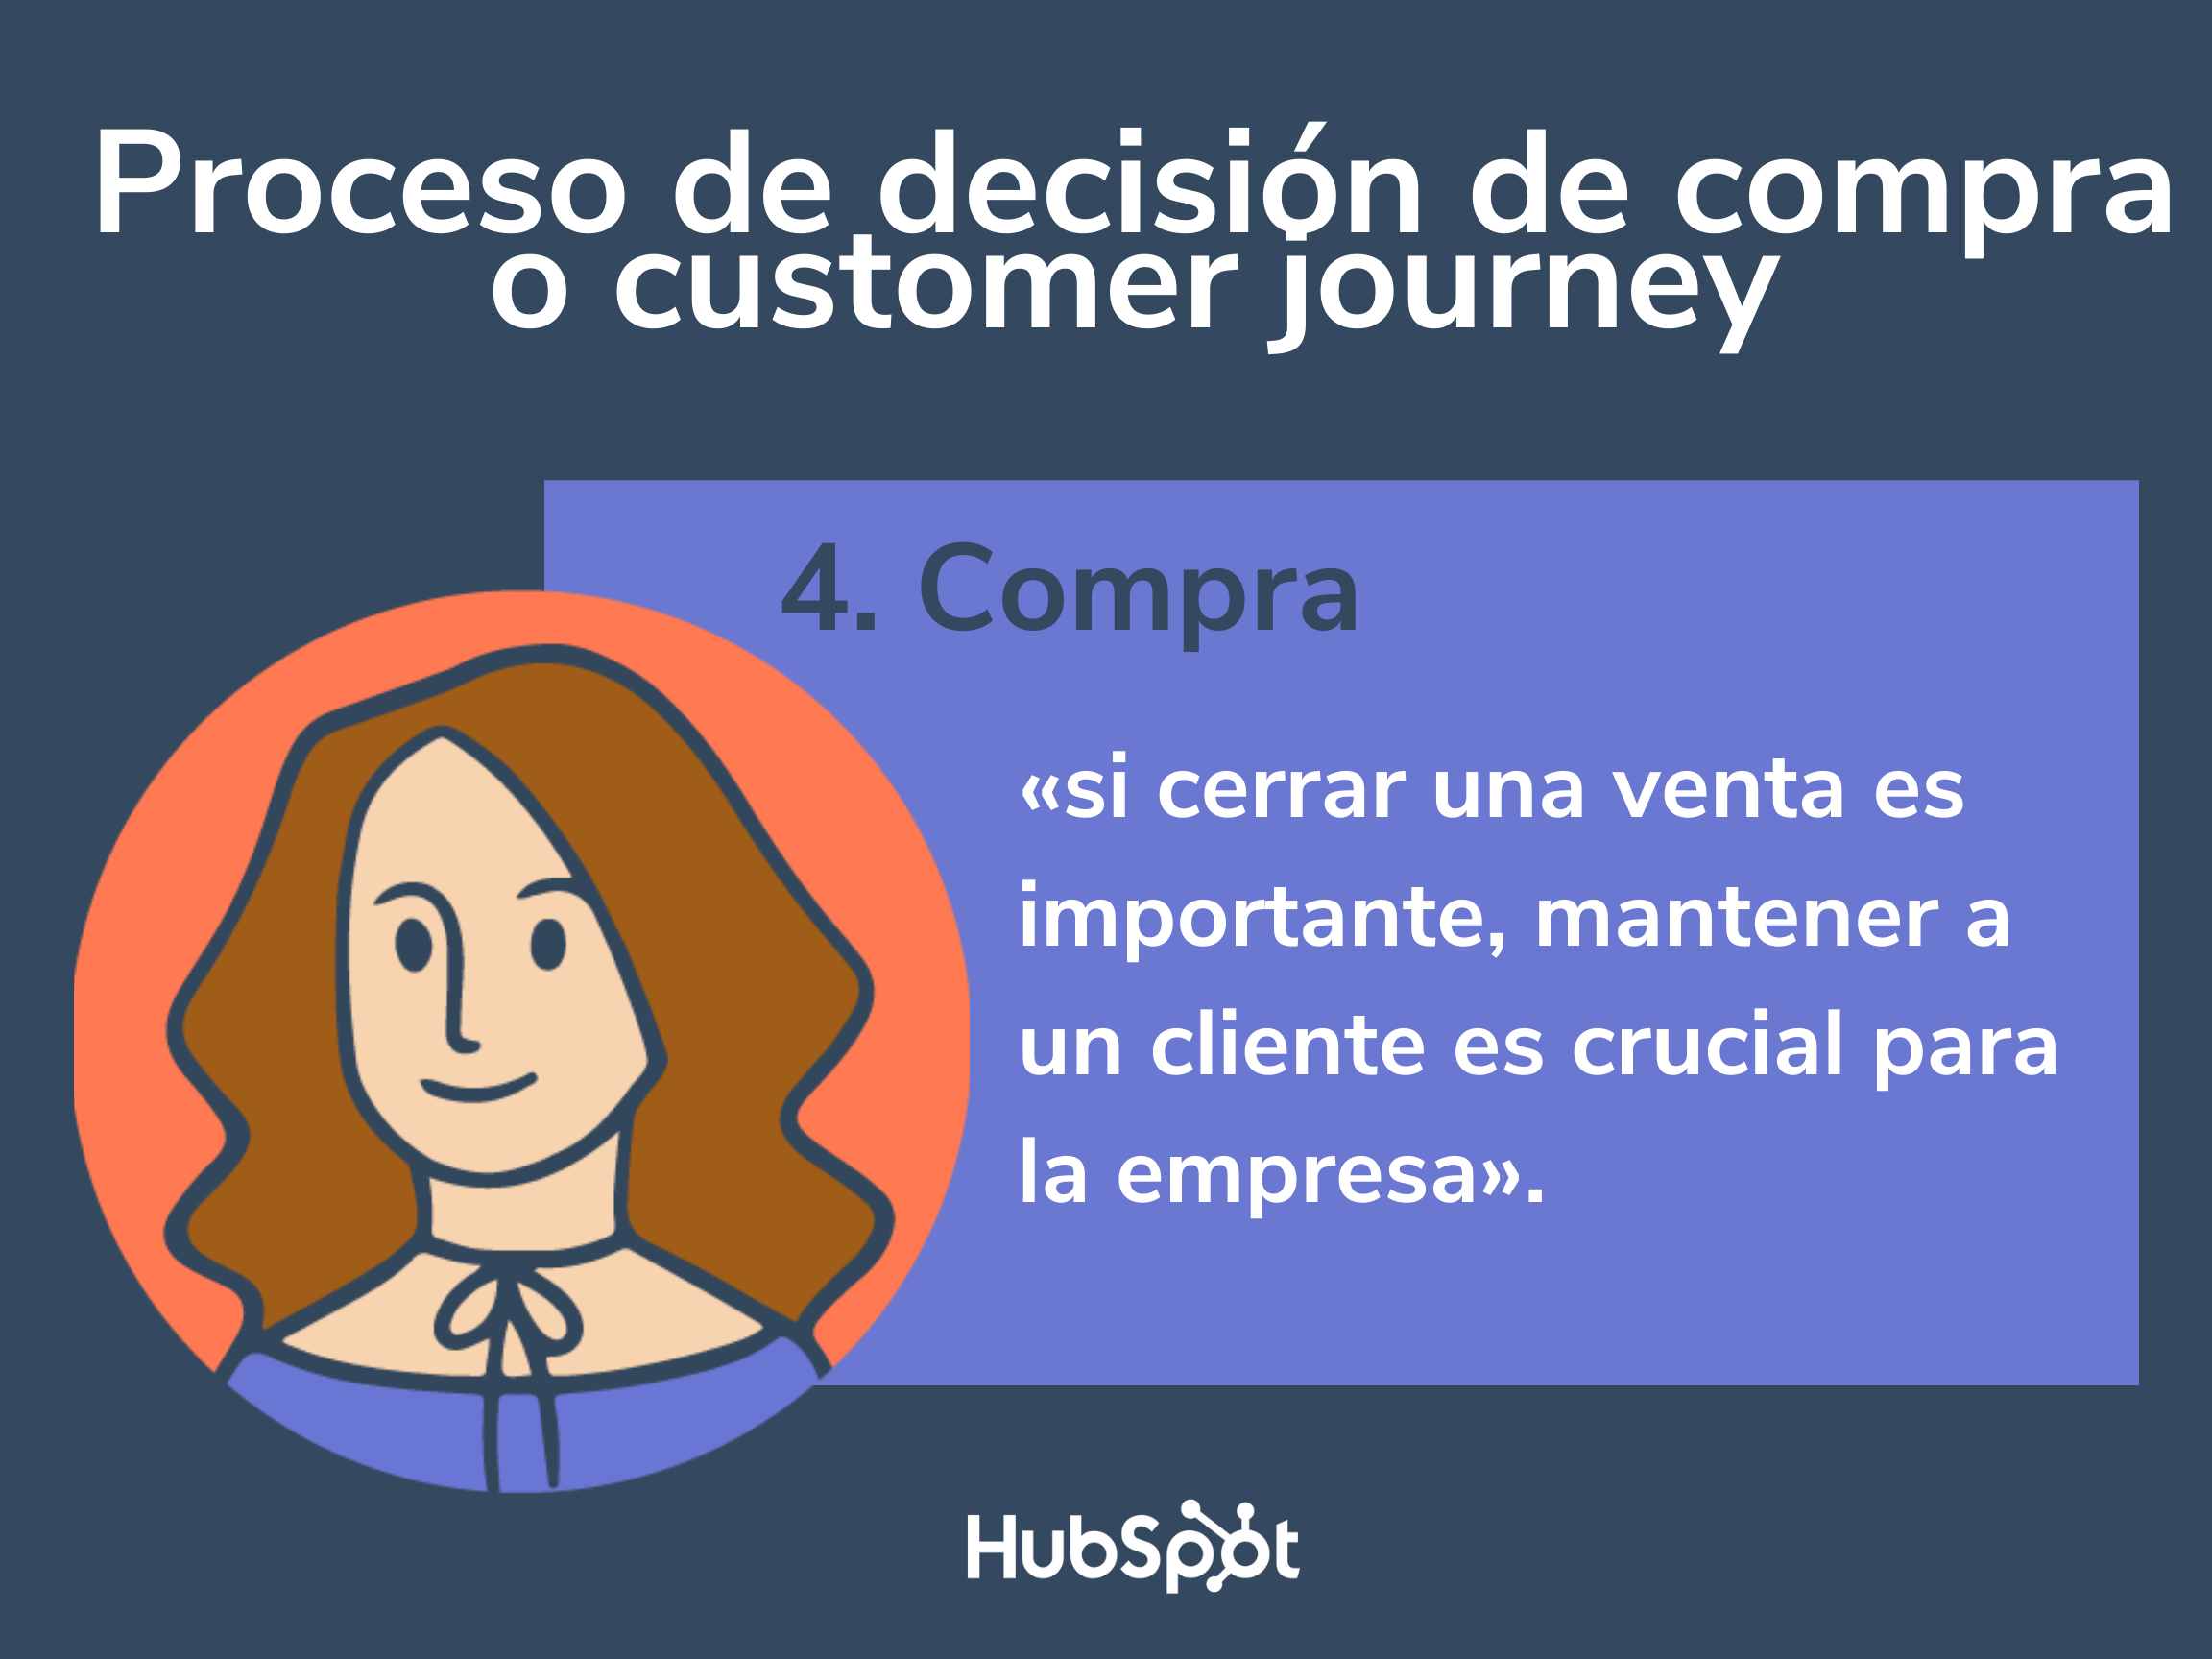 Cuarta etapa del customer journey: compra